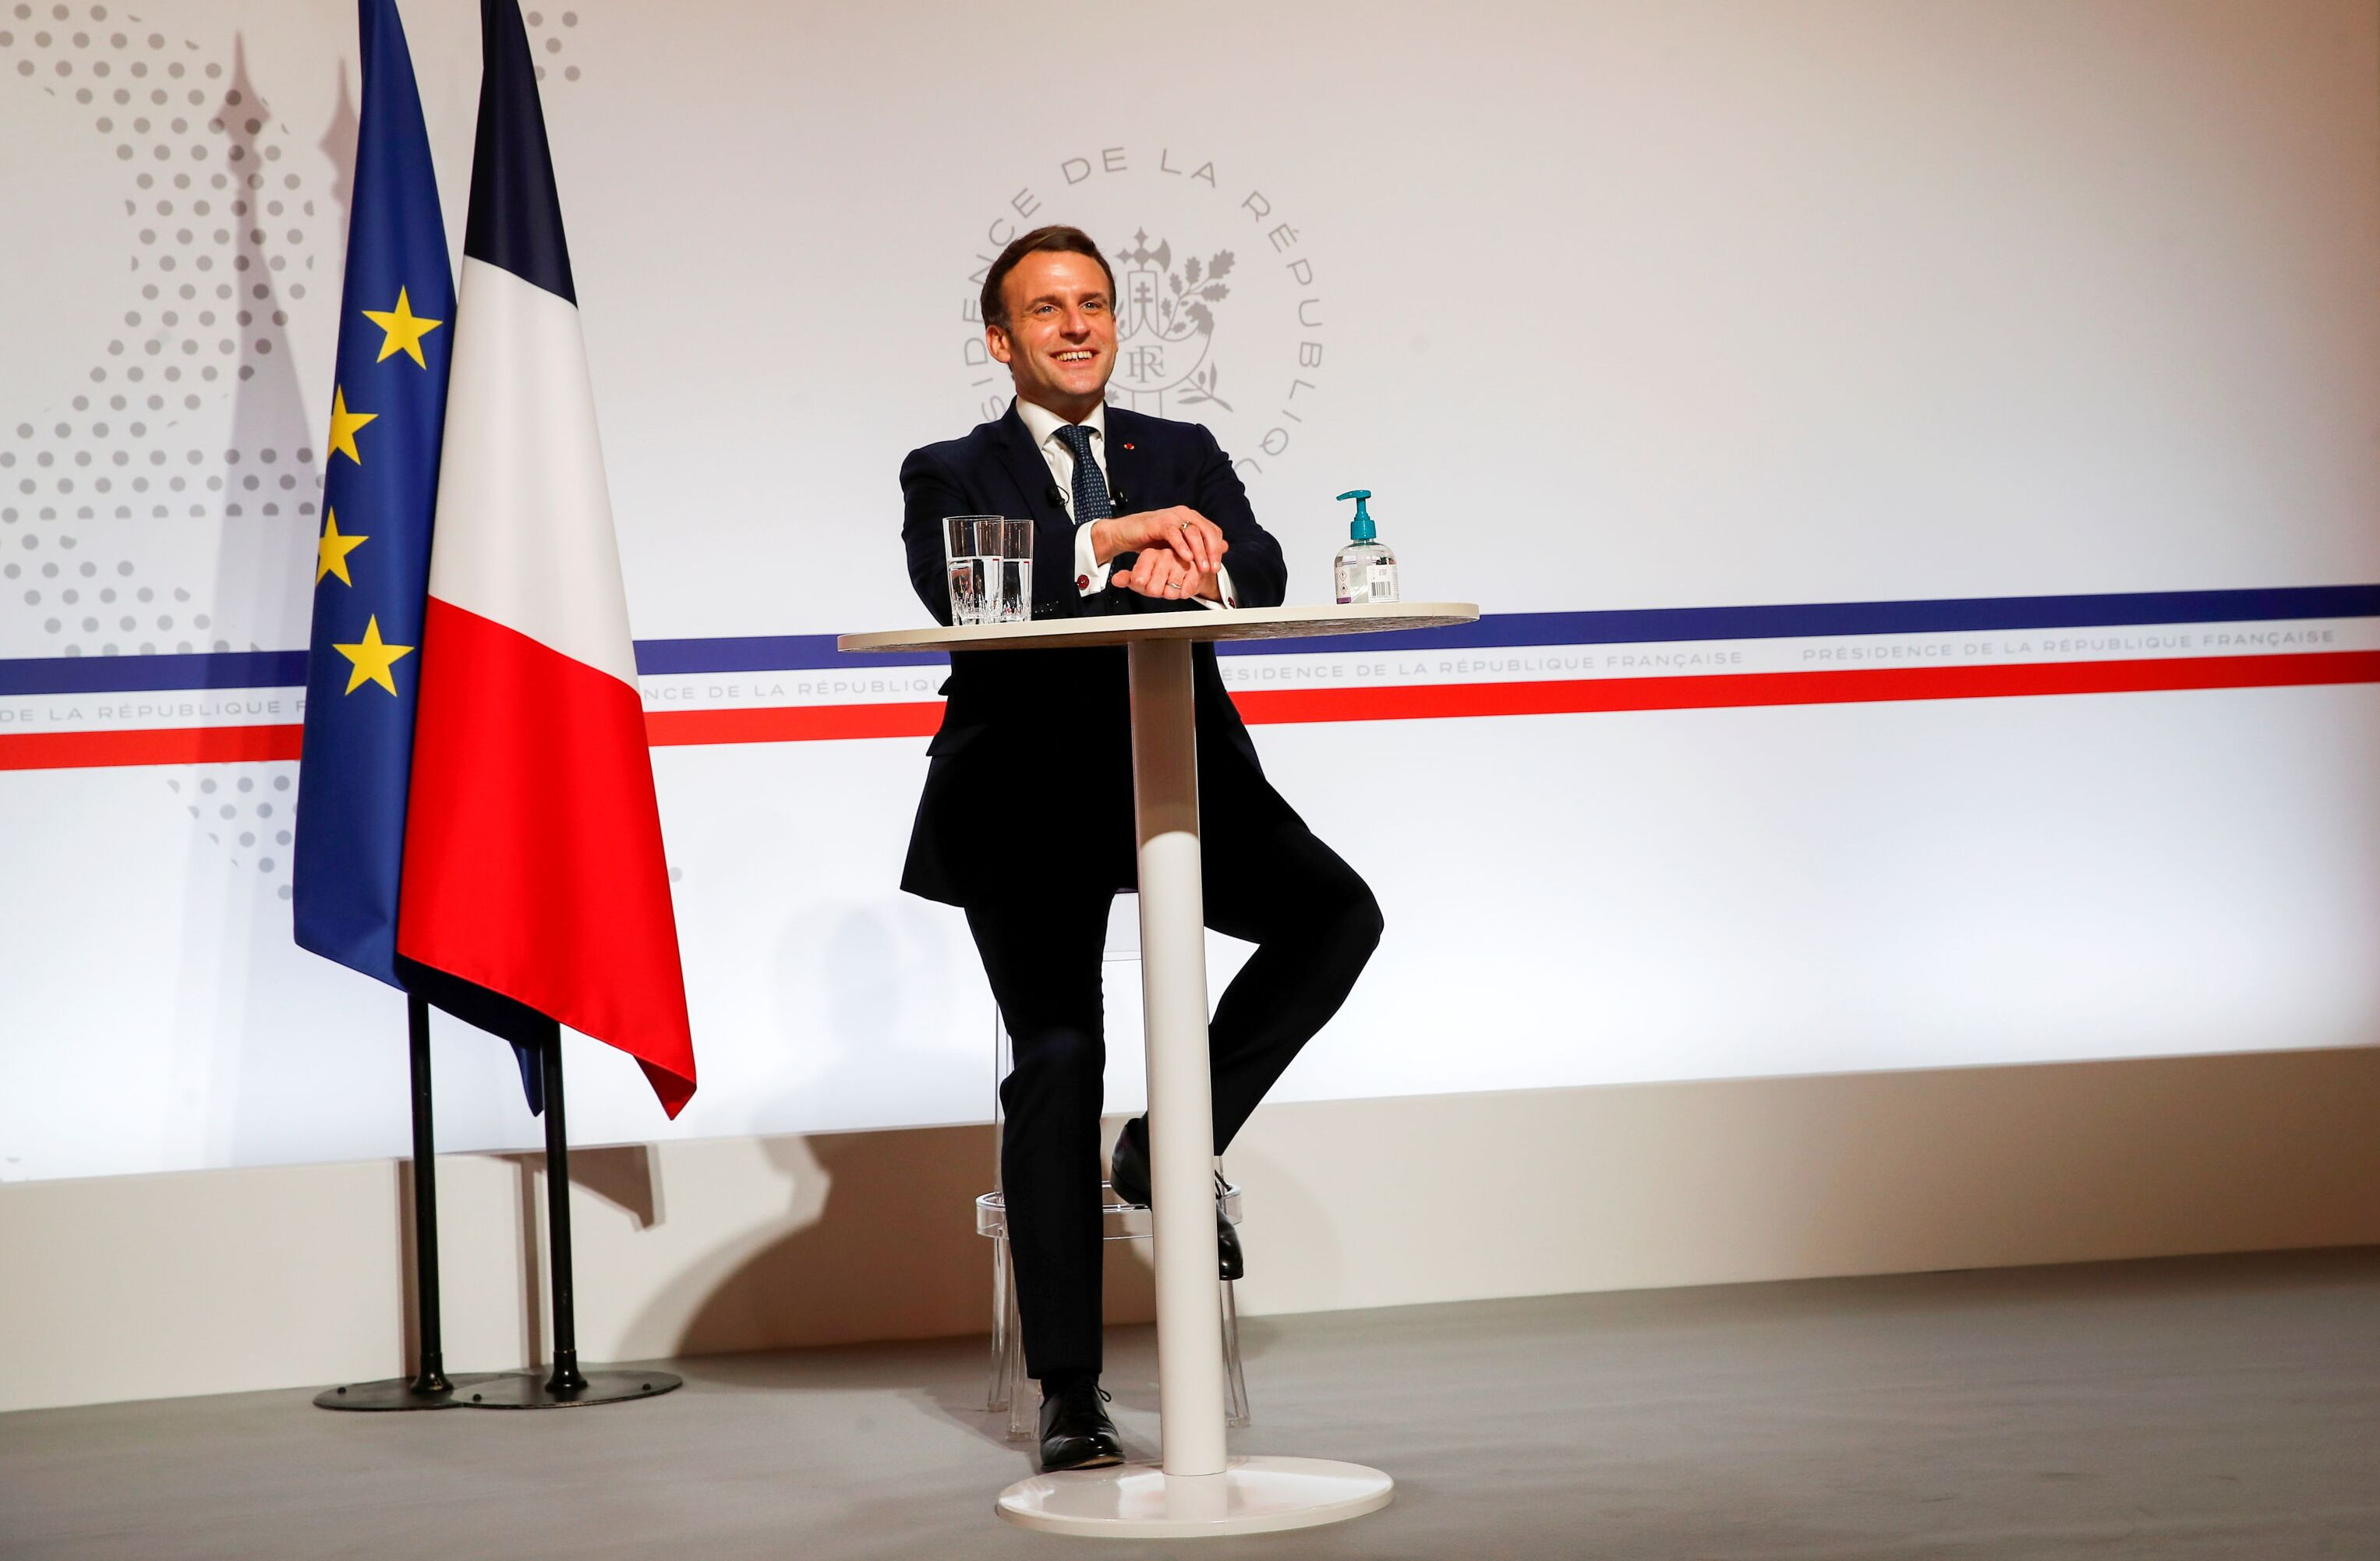 French President Emmanuel Macron speaks via video with Founder and Executive Chairman of the World Economic Forum (WEF) Klaus Schwab during the WEF of the Davos Agenda, at the Elysee Palace in Paris, France January 26, 2021